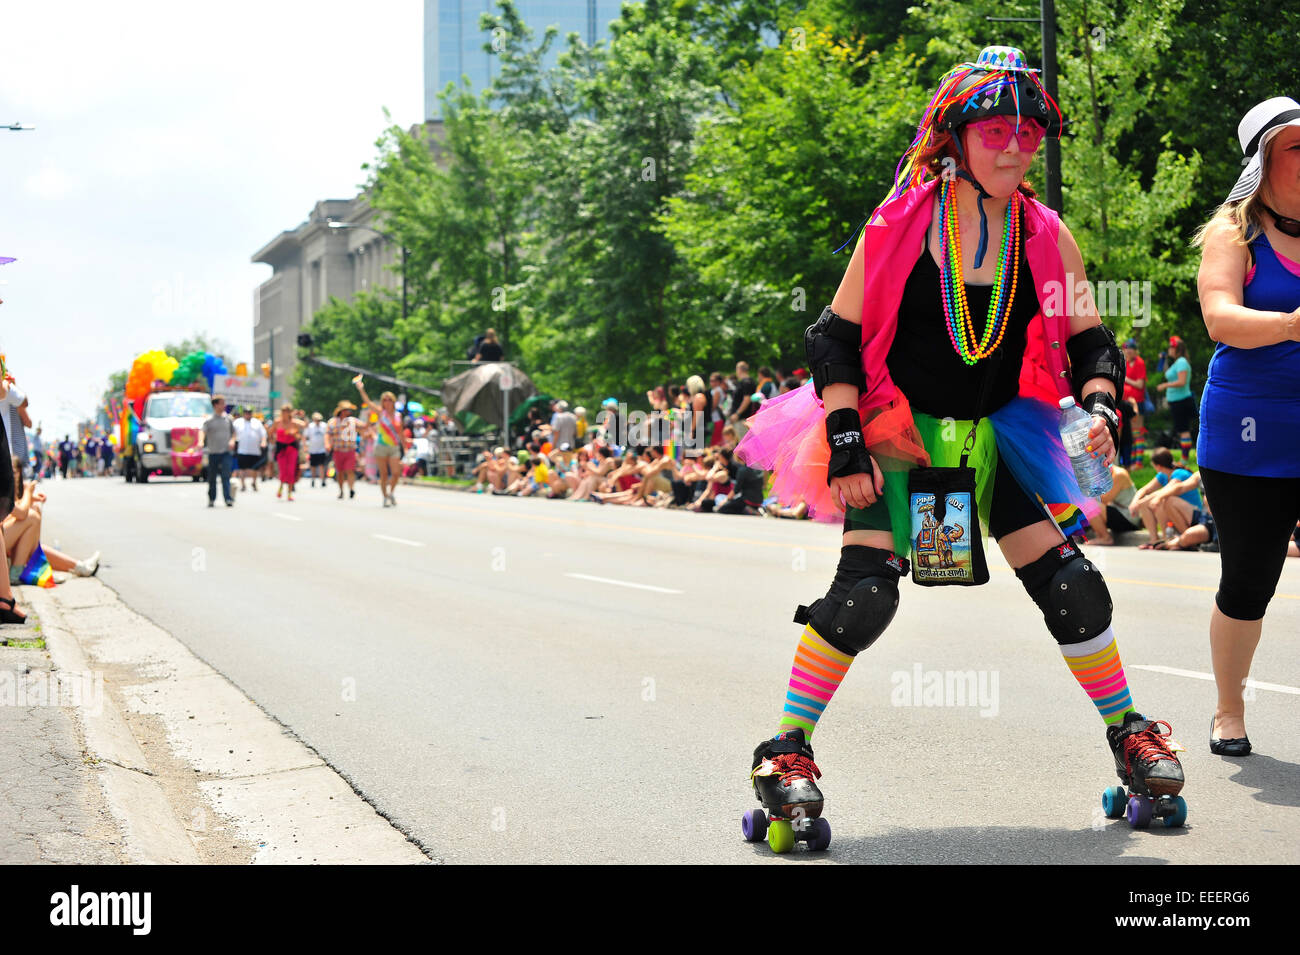 Roller skating groton ct